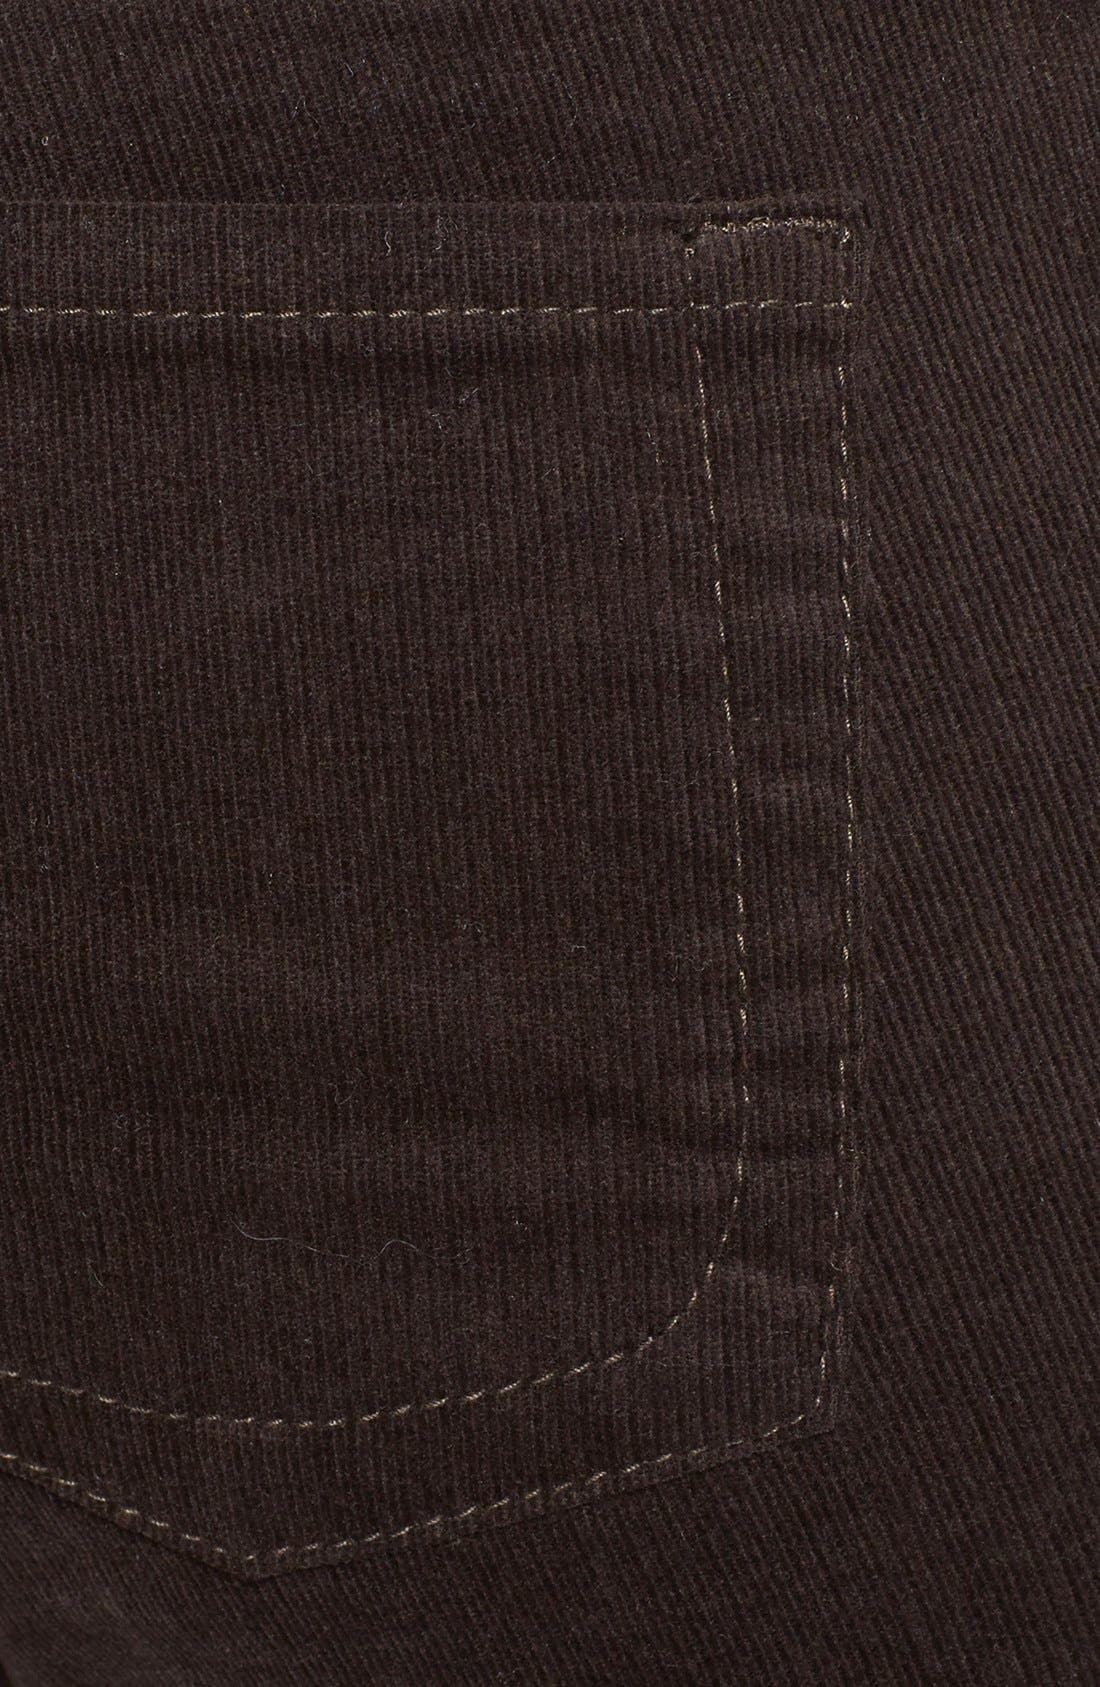 Baby Bootcut Corduroy Jeans,                             Alternate thumbnail 80, color,